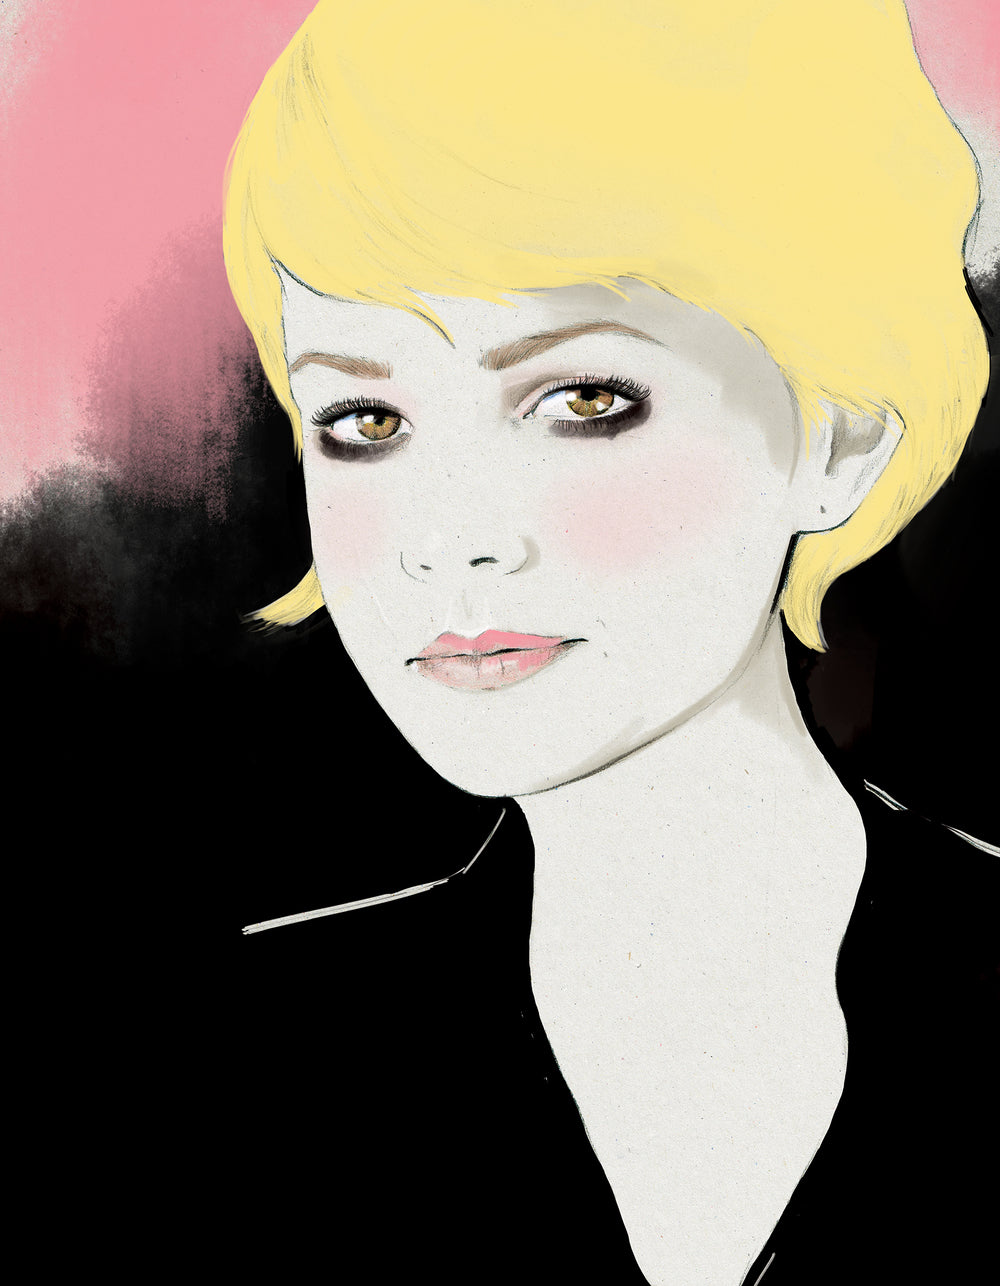 Actress Carey Mulligan fashion illustration Little White Lies book by Melbourne based illustrator Kelly Thompson